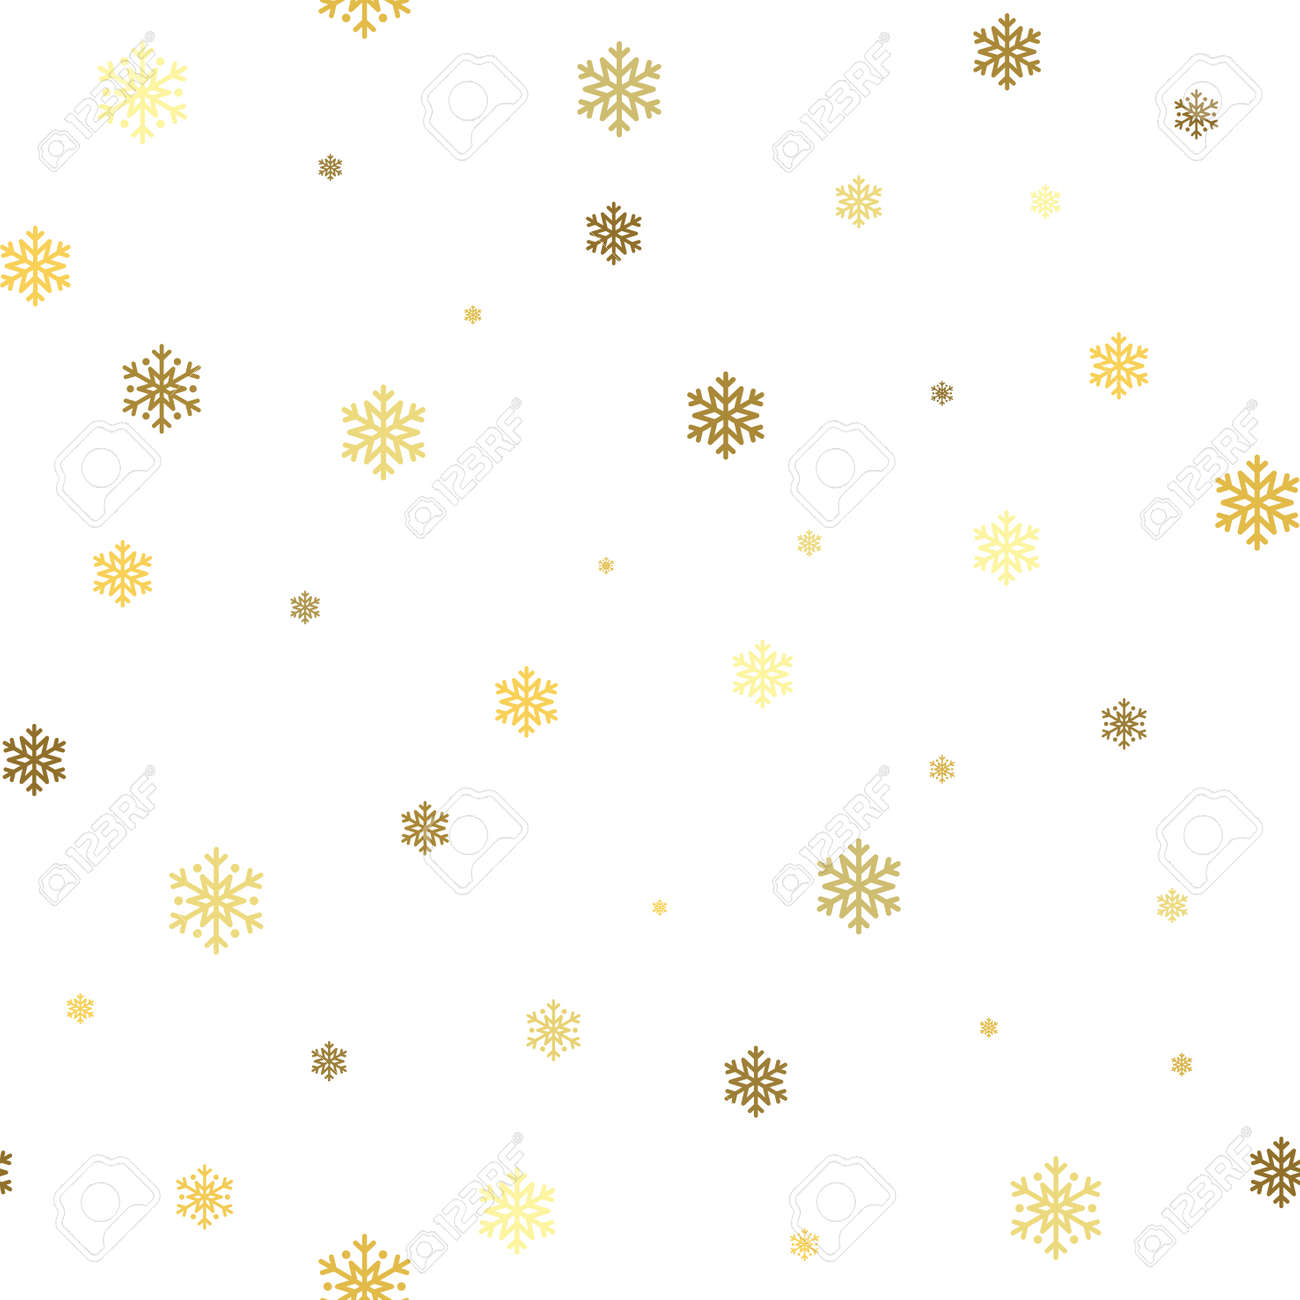 Christmas Snowflake Seamless Pattern Gold Snow White Background Golden Abstract Wallpaper Wrapping Texture